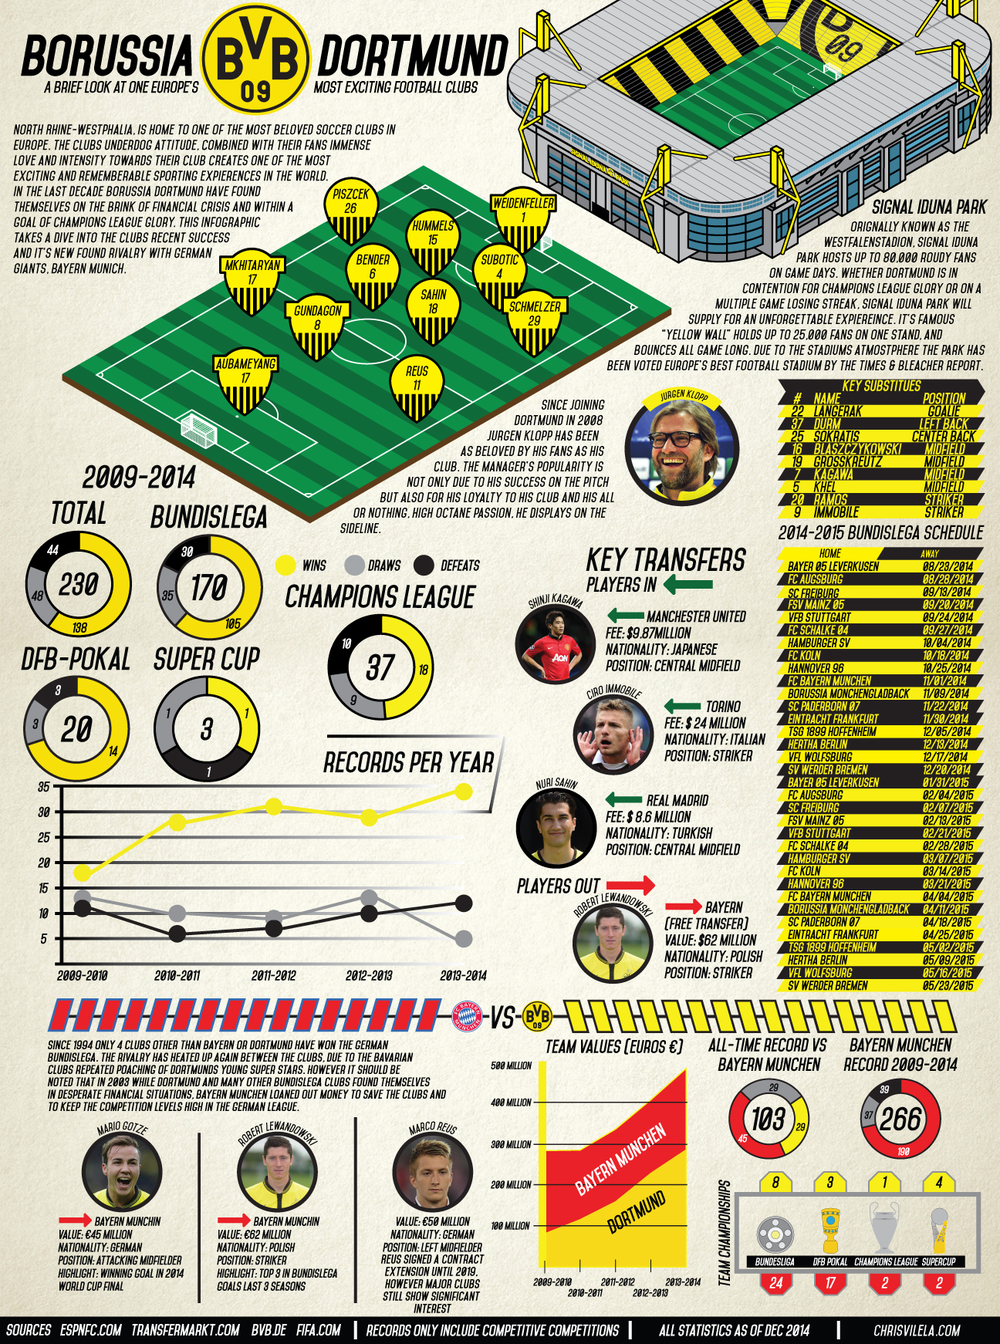 An infographic that details the current state of my favorite soccer club Borussia Dortmund and over the last 5 years.